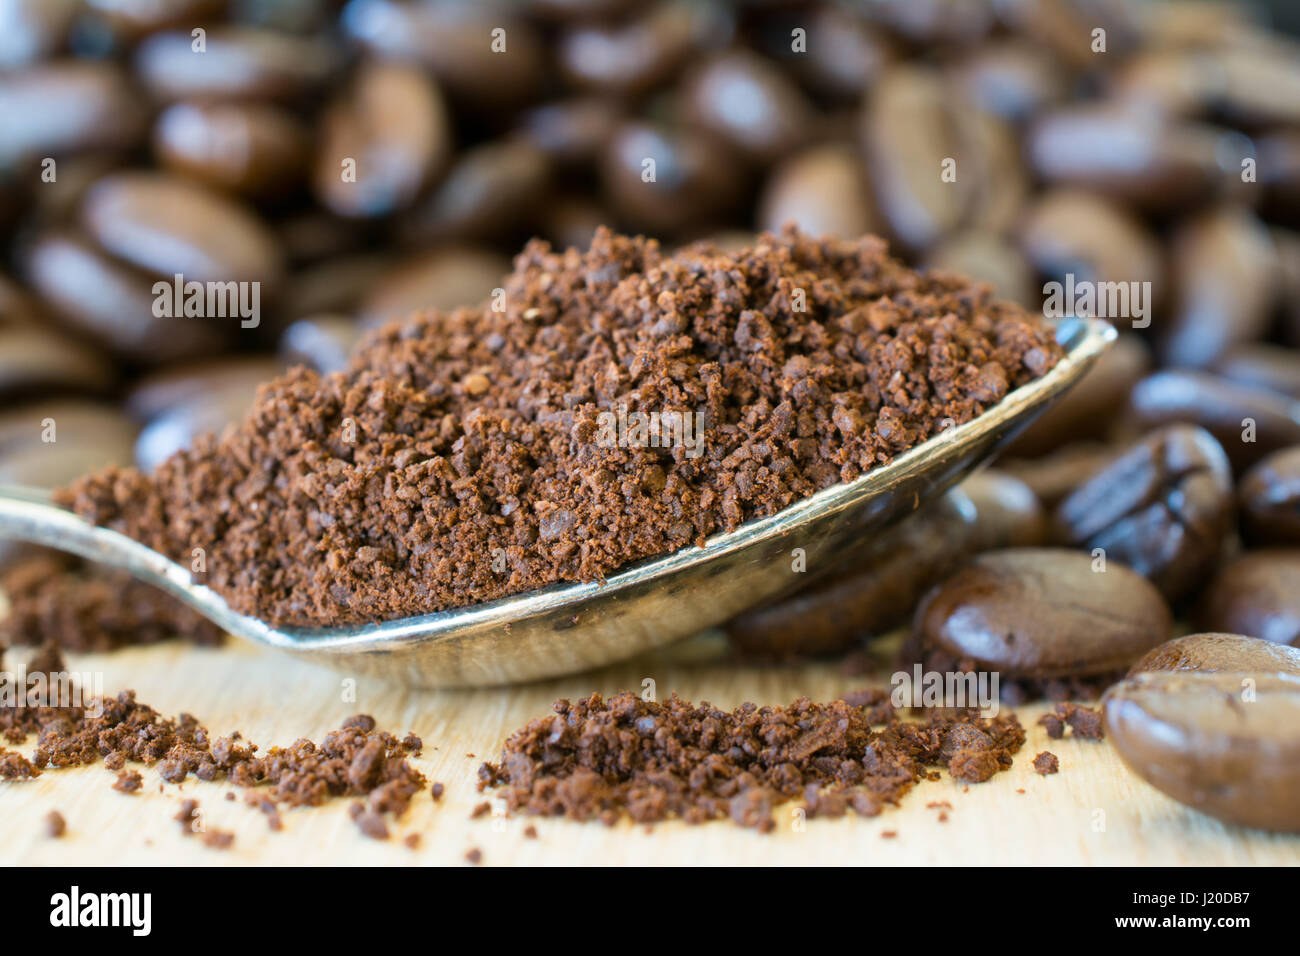 ground coffee stock photo - photo #8